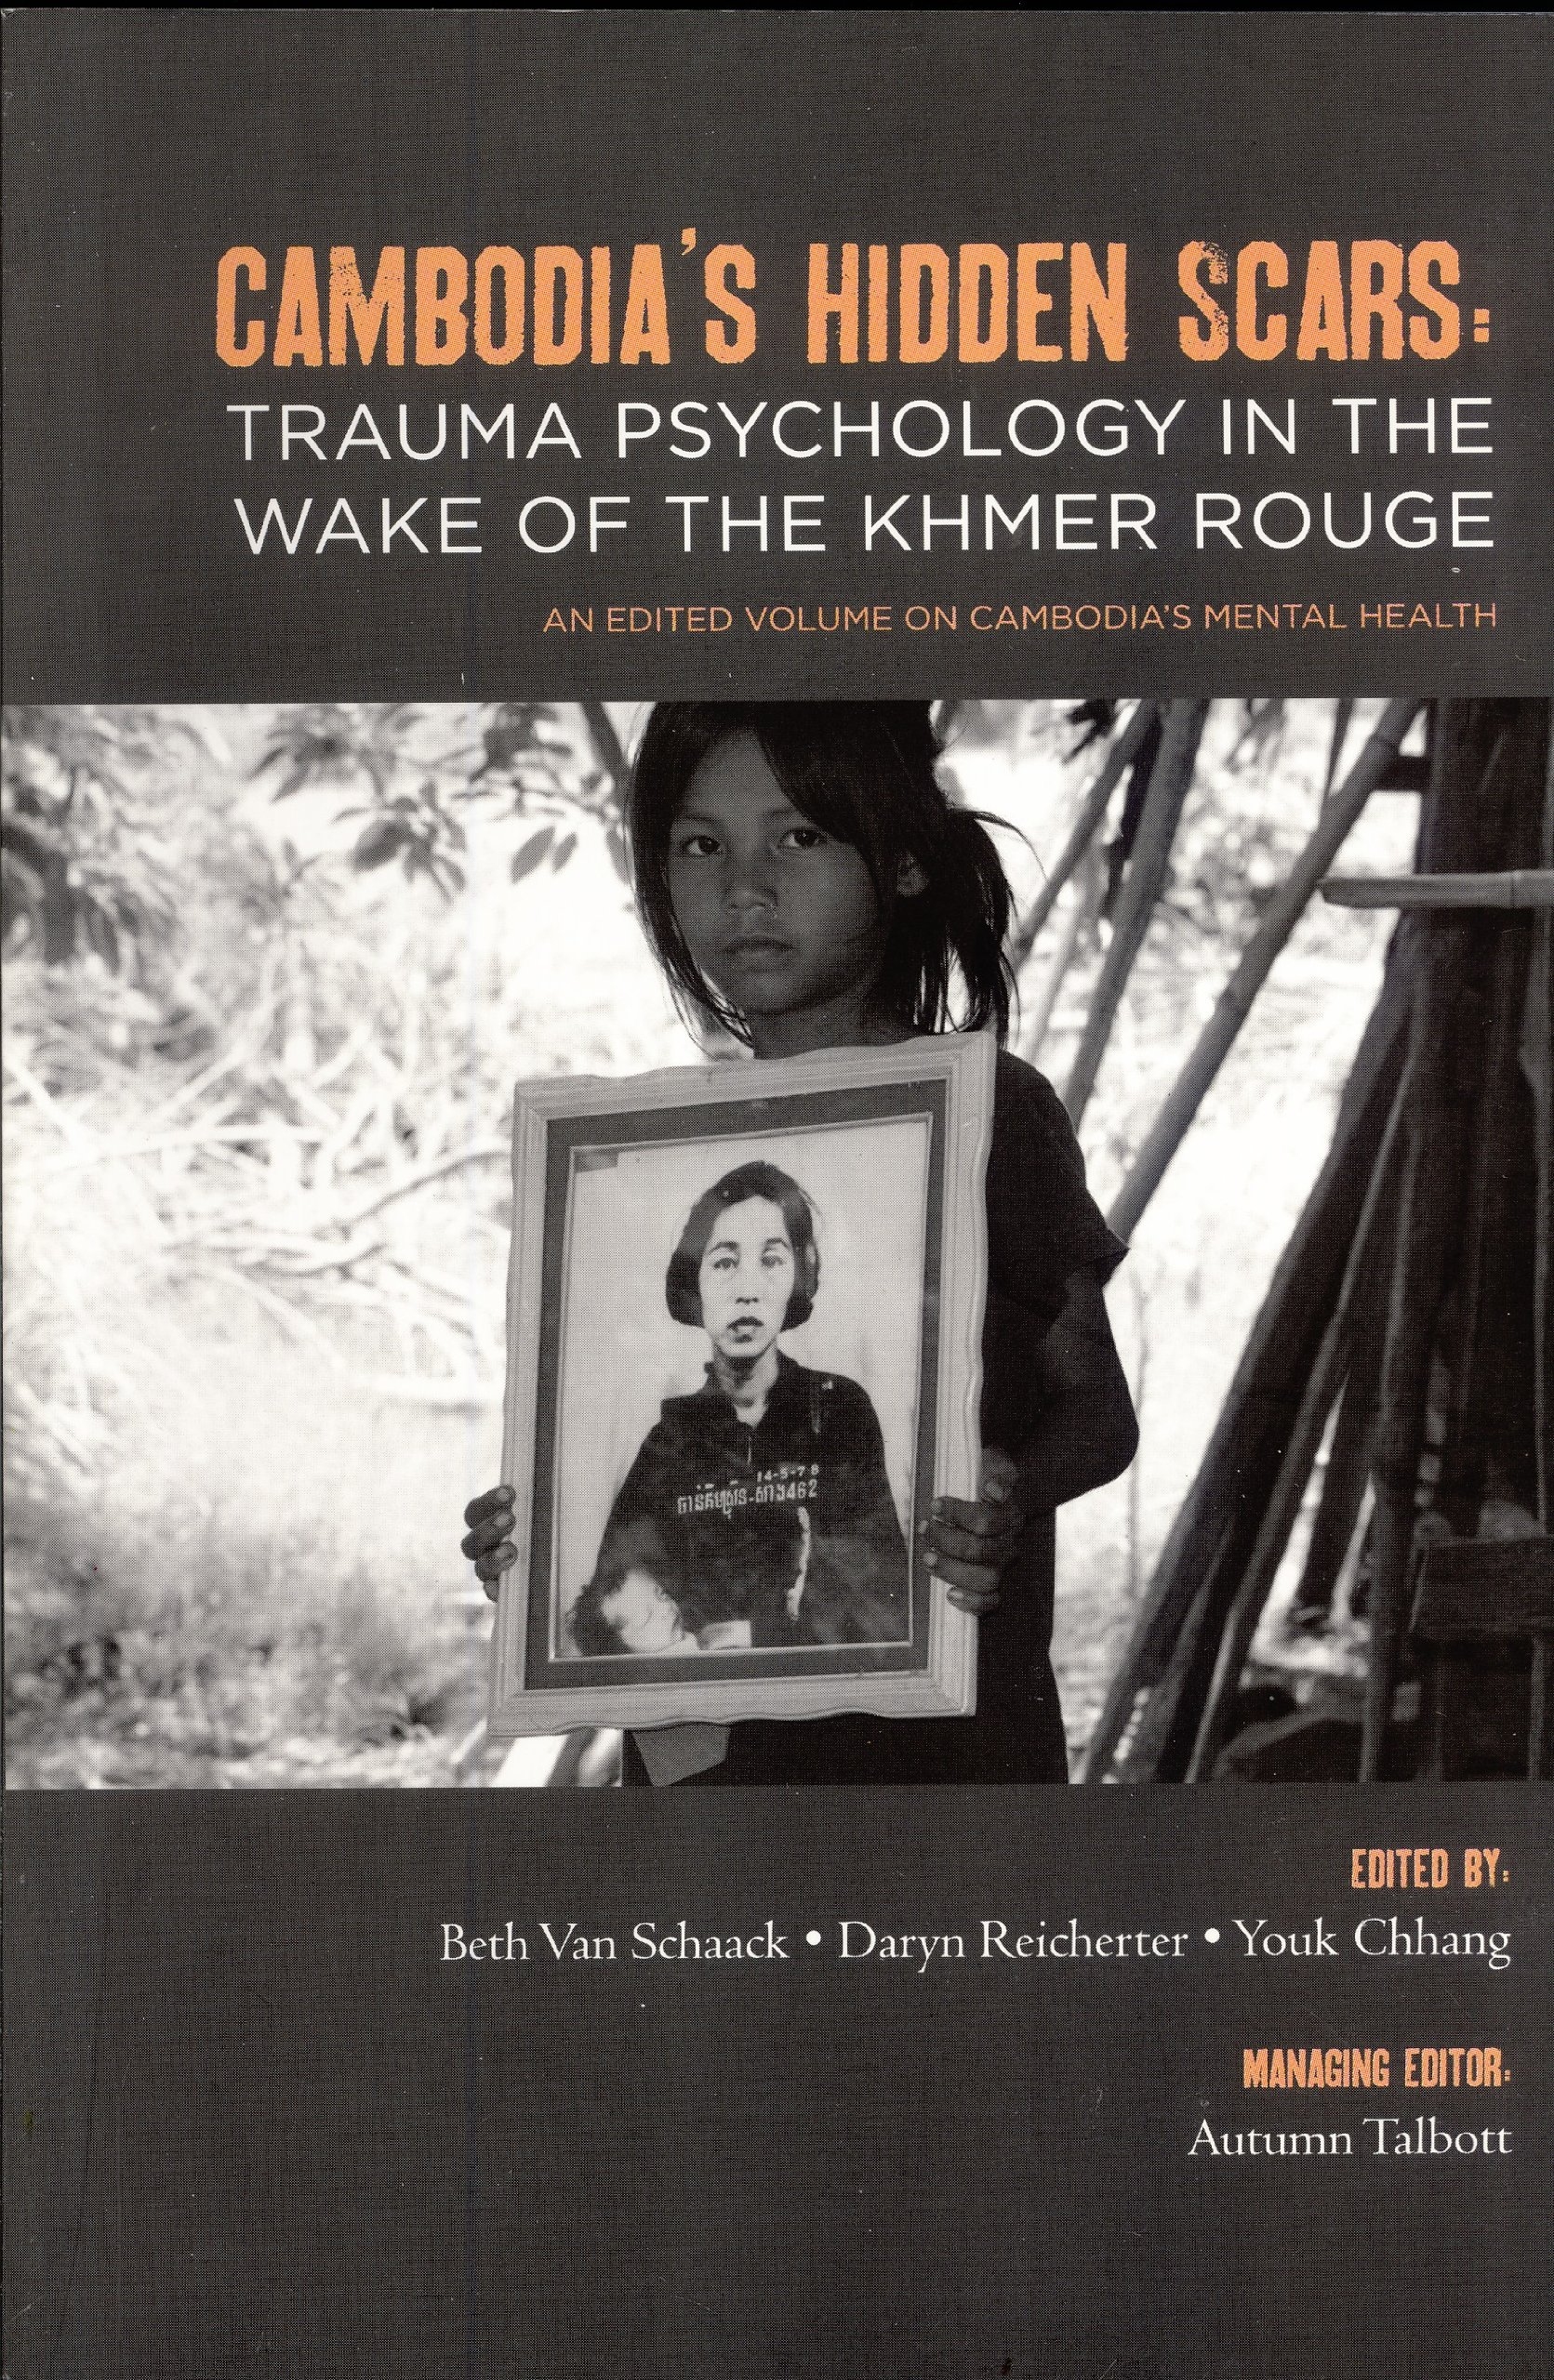 Download Cambodia's Hidden Scars: Trauma Psychology in the Wake of the Khmer Rouge, an Edited Volume on Cambodia's Mental Health ebook